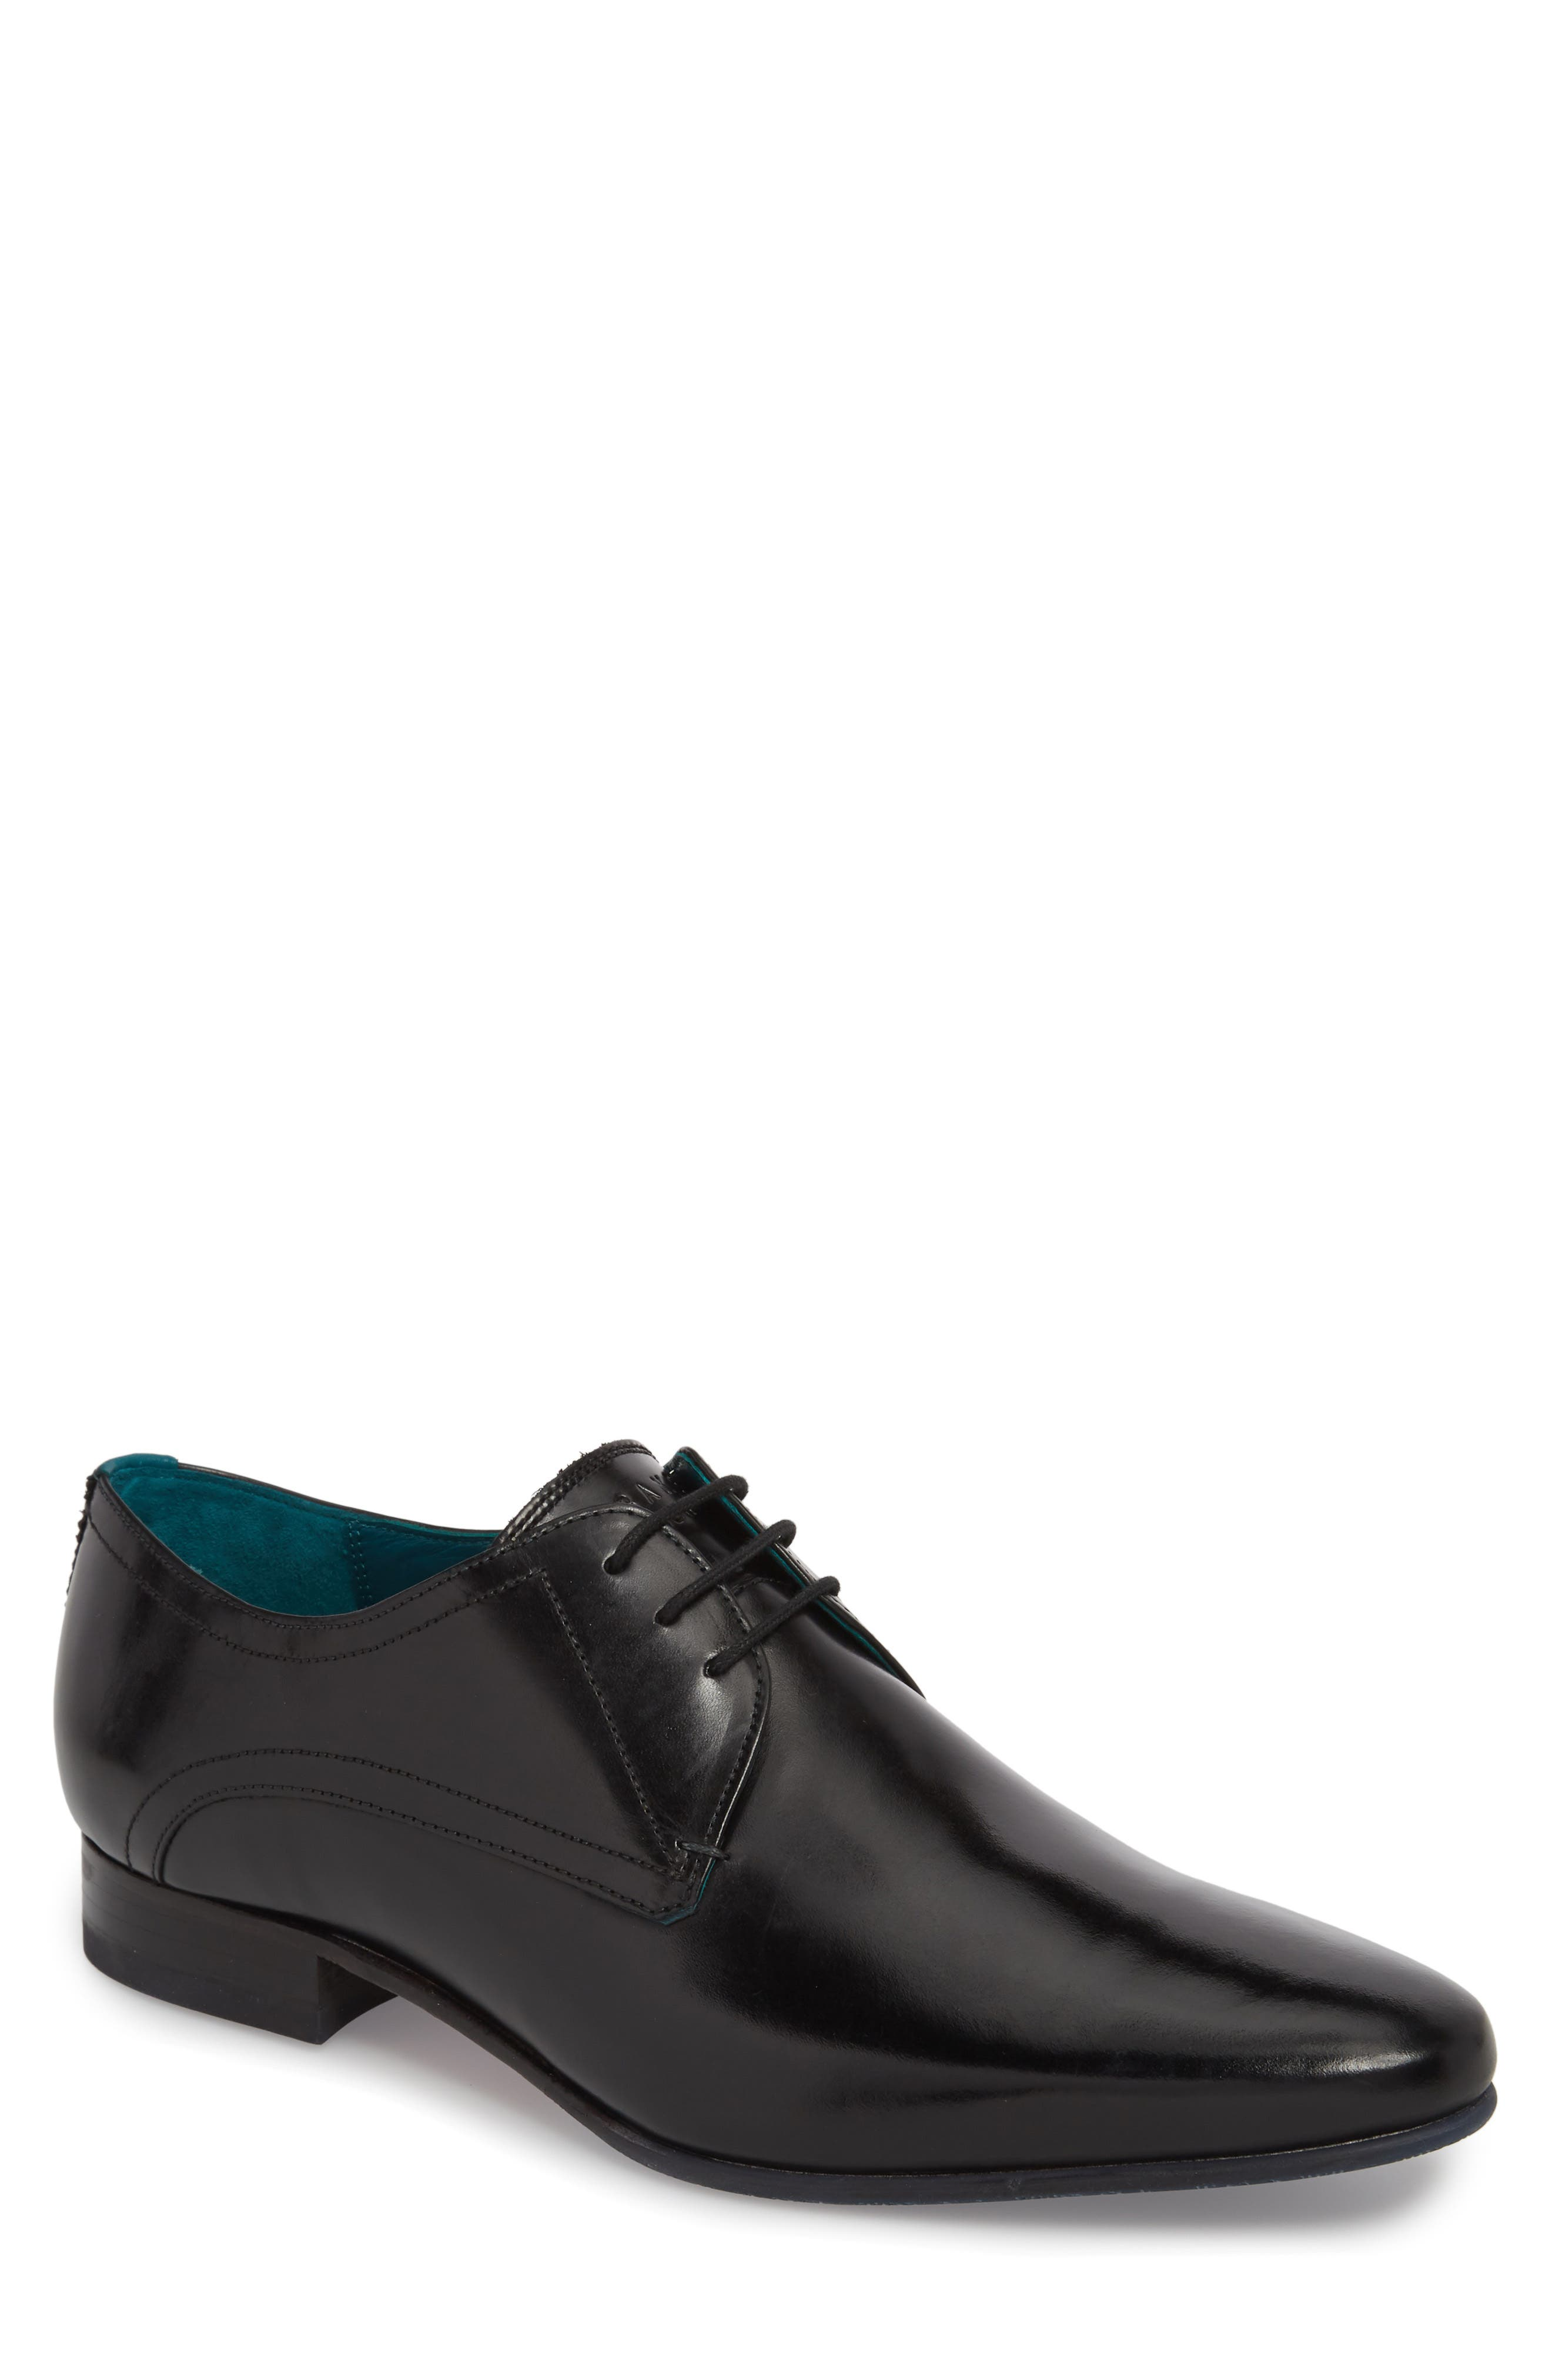 Bhartli Plain Toe Derby,                             Main thumbnail 1, color,                             BLACK LEATHER